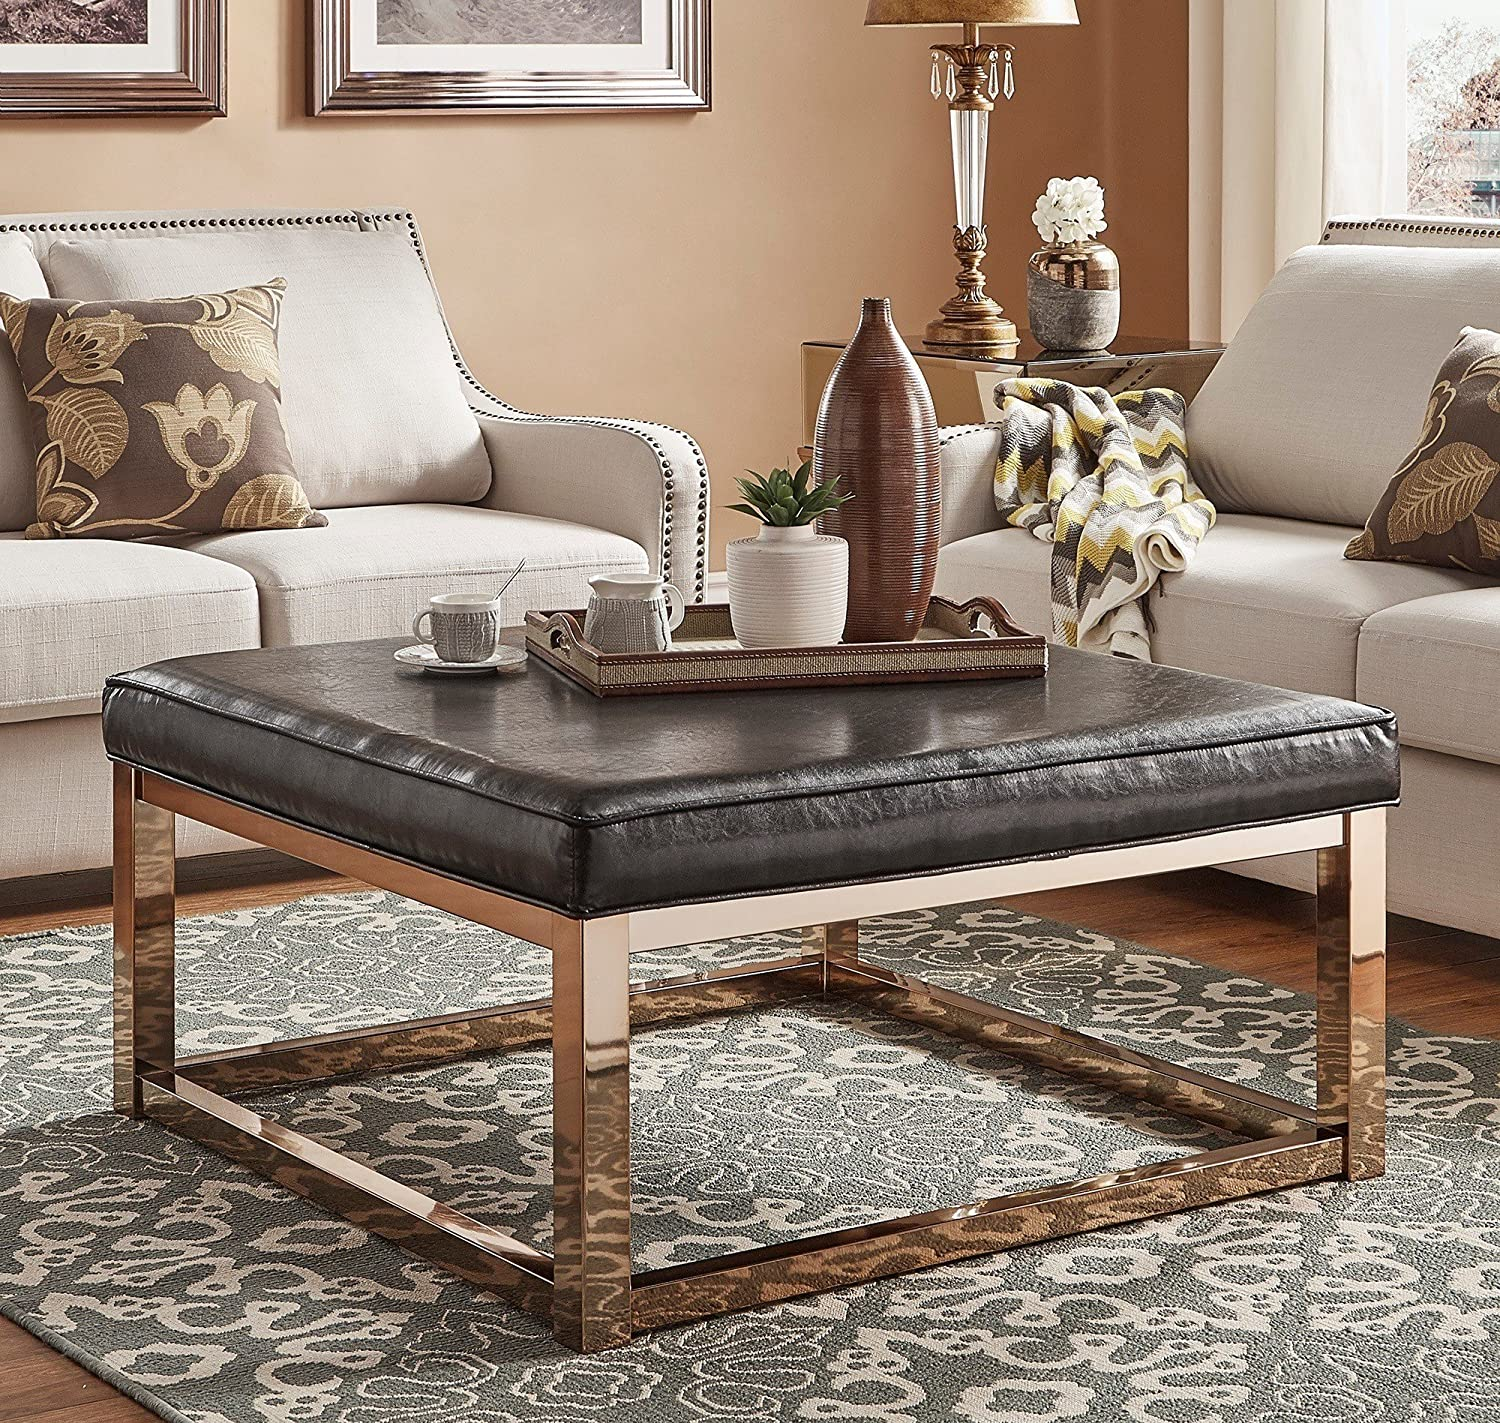 - Amazon.com: Luxurious Ottoman Coffee Table Smooth Faux Leather Top